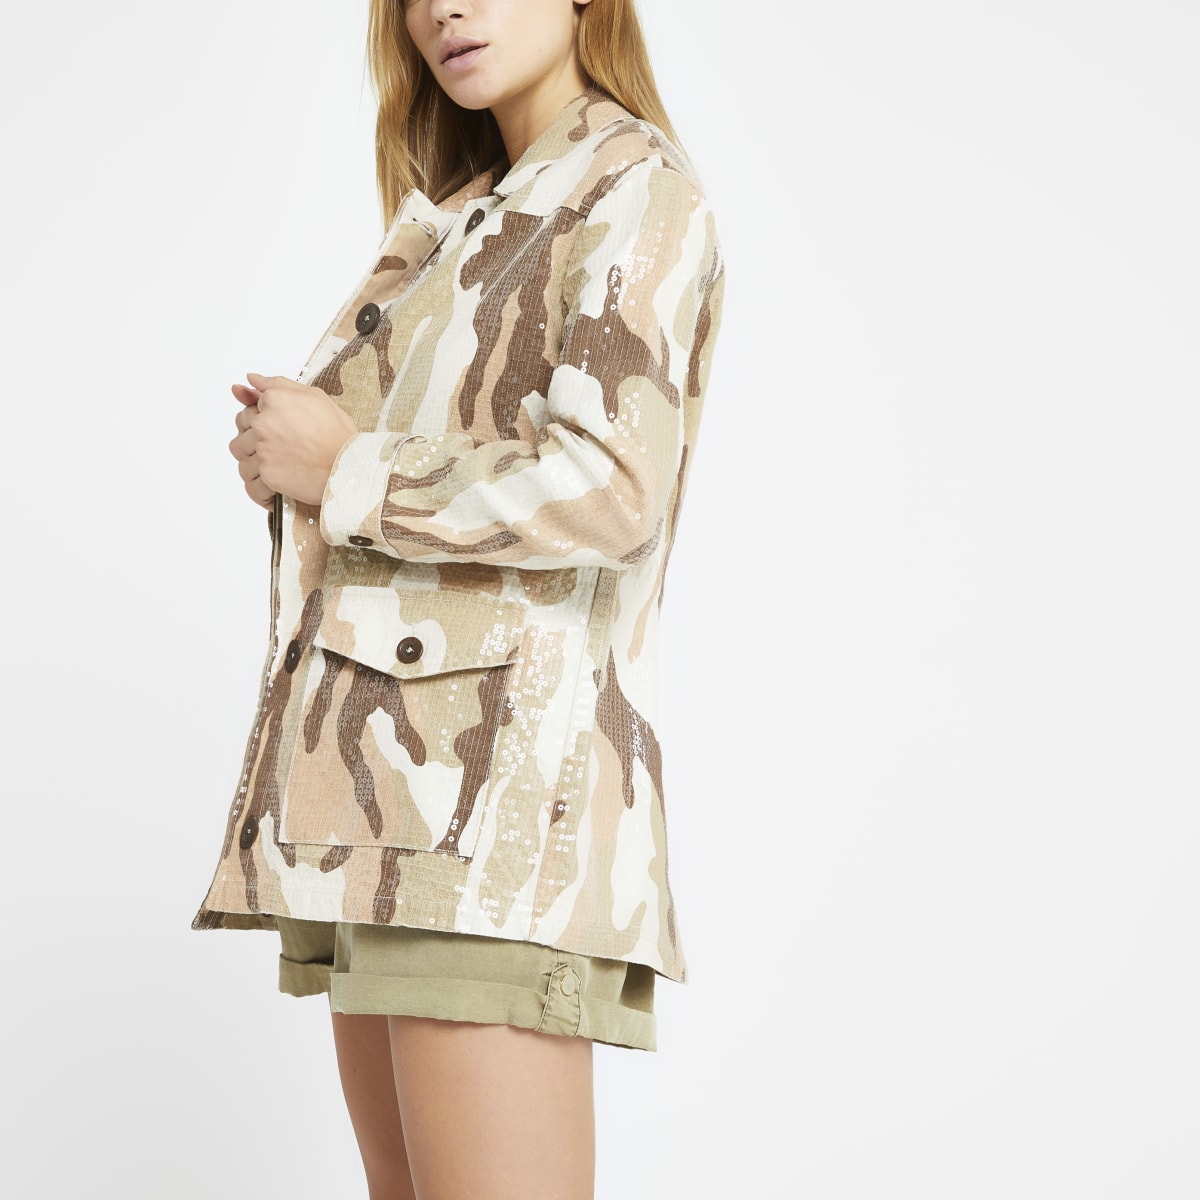 Cream camo sequin army jacket